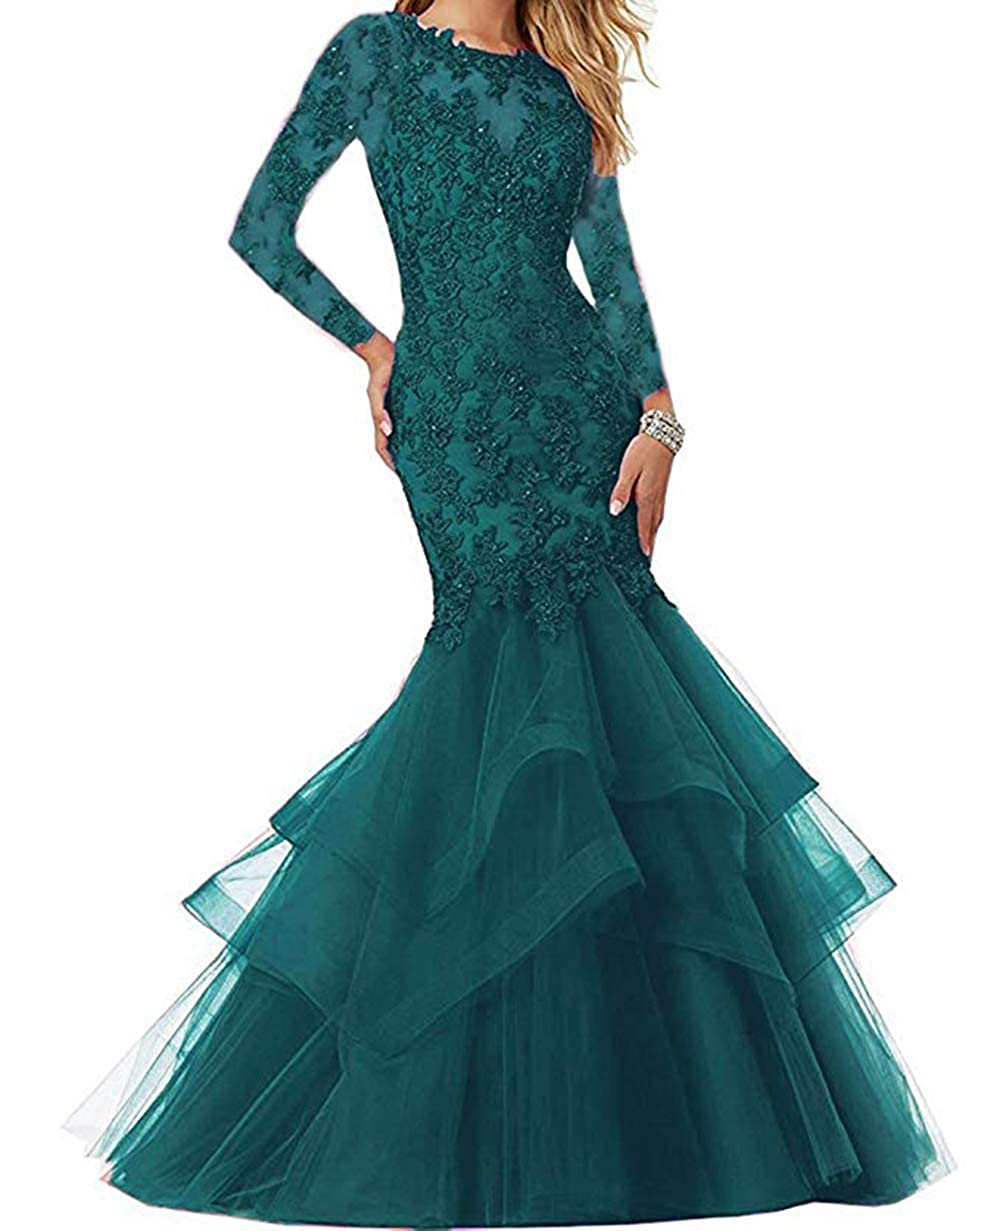 Hunter Green Women's Mermaid Prom Dresses Beaded Lace Appliques Formal Evening Gowns Long Sleeves